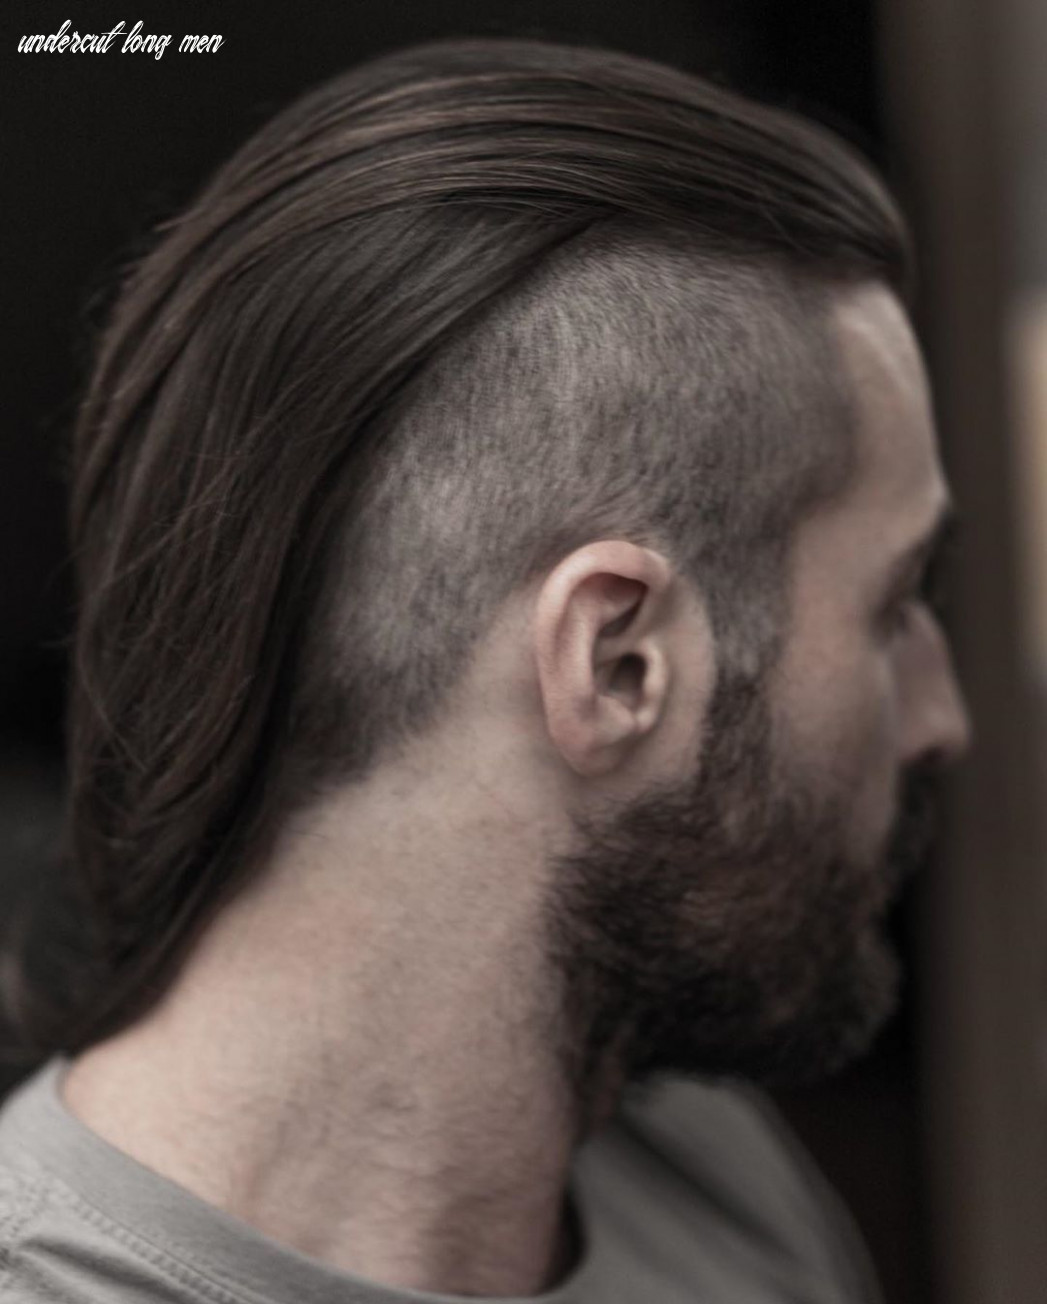 10 popular undercut long hair looks for men (10 guide) undercut long men